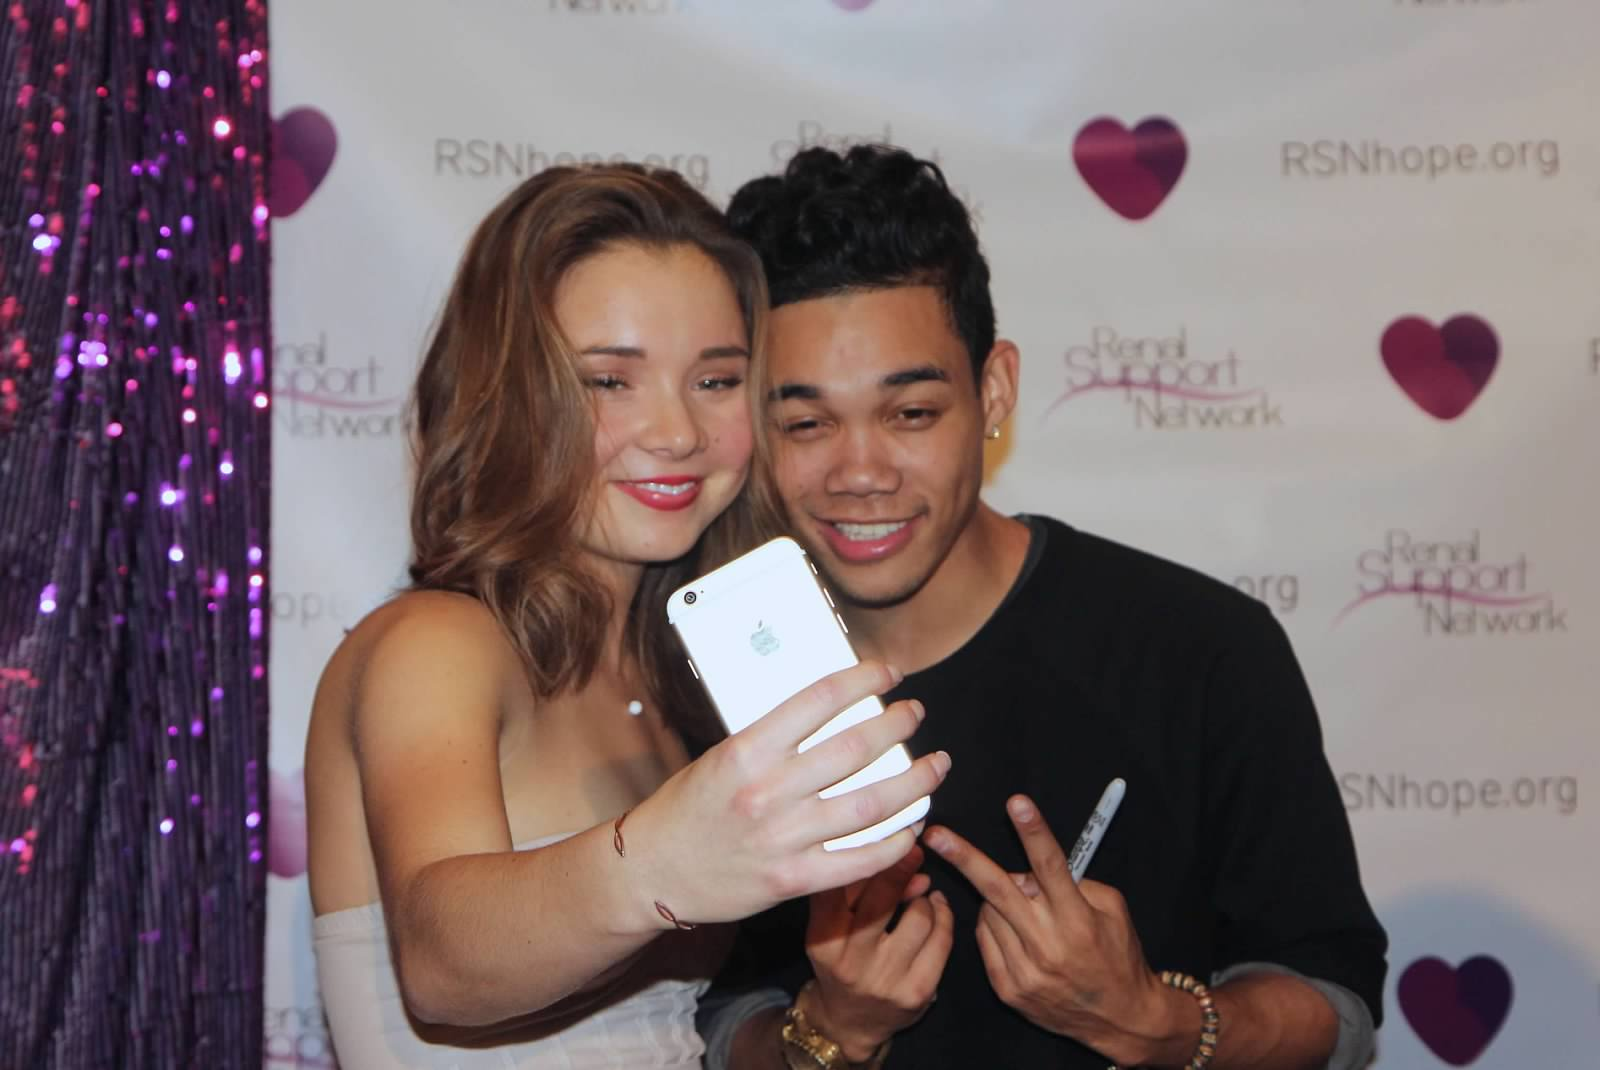 renal teen prom - Roshon